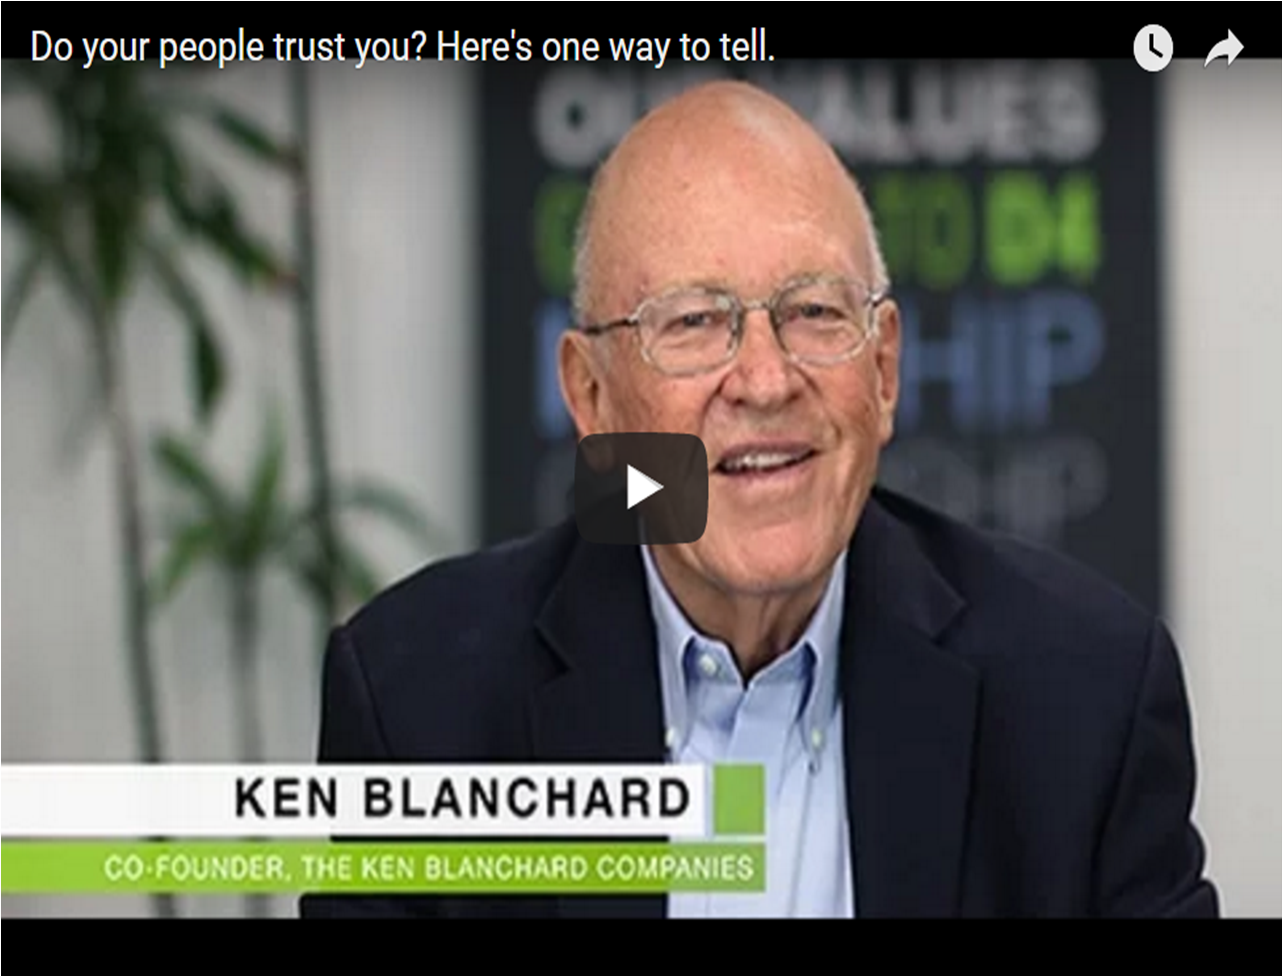 Do You Work in a Trusting Environment?  Check out the Nonverbals, says Ken Blanchard